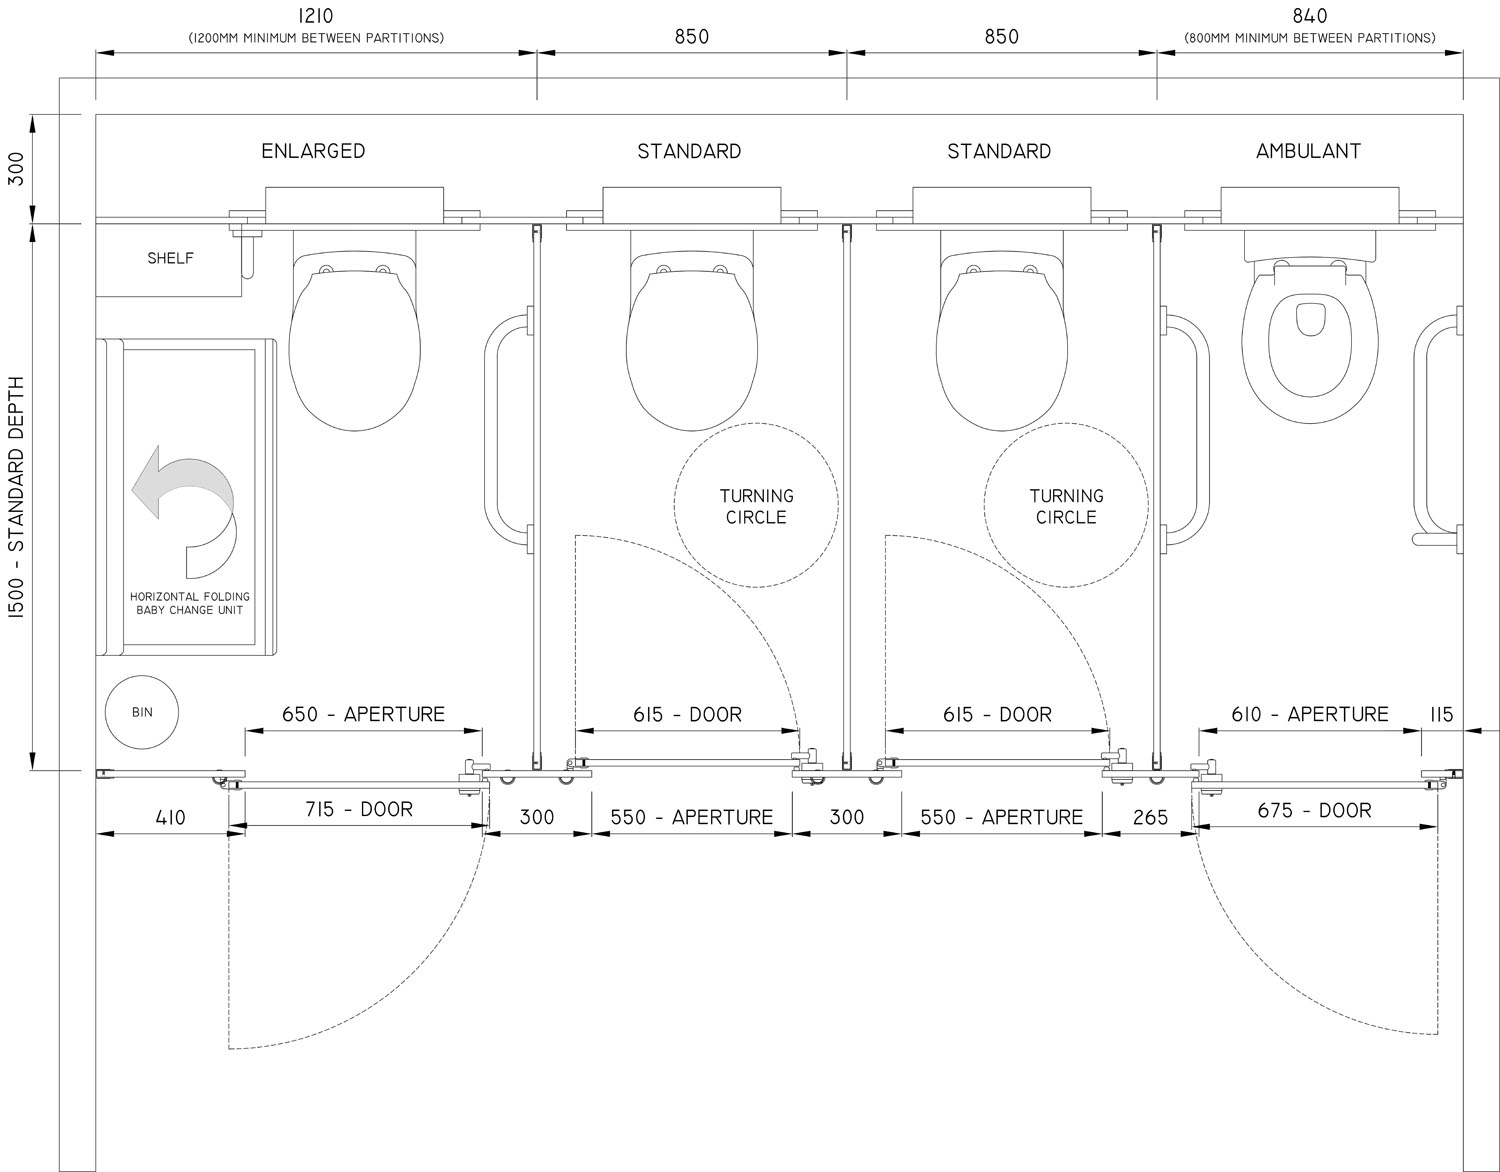 Model Standard Cubicle Toilet Sizes. Standard Toilet Cubicle Sizes   Cubicle Systems